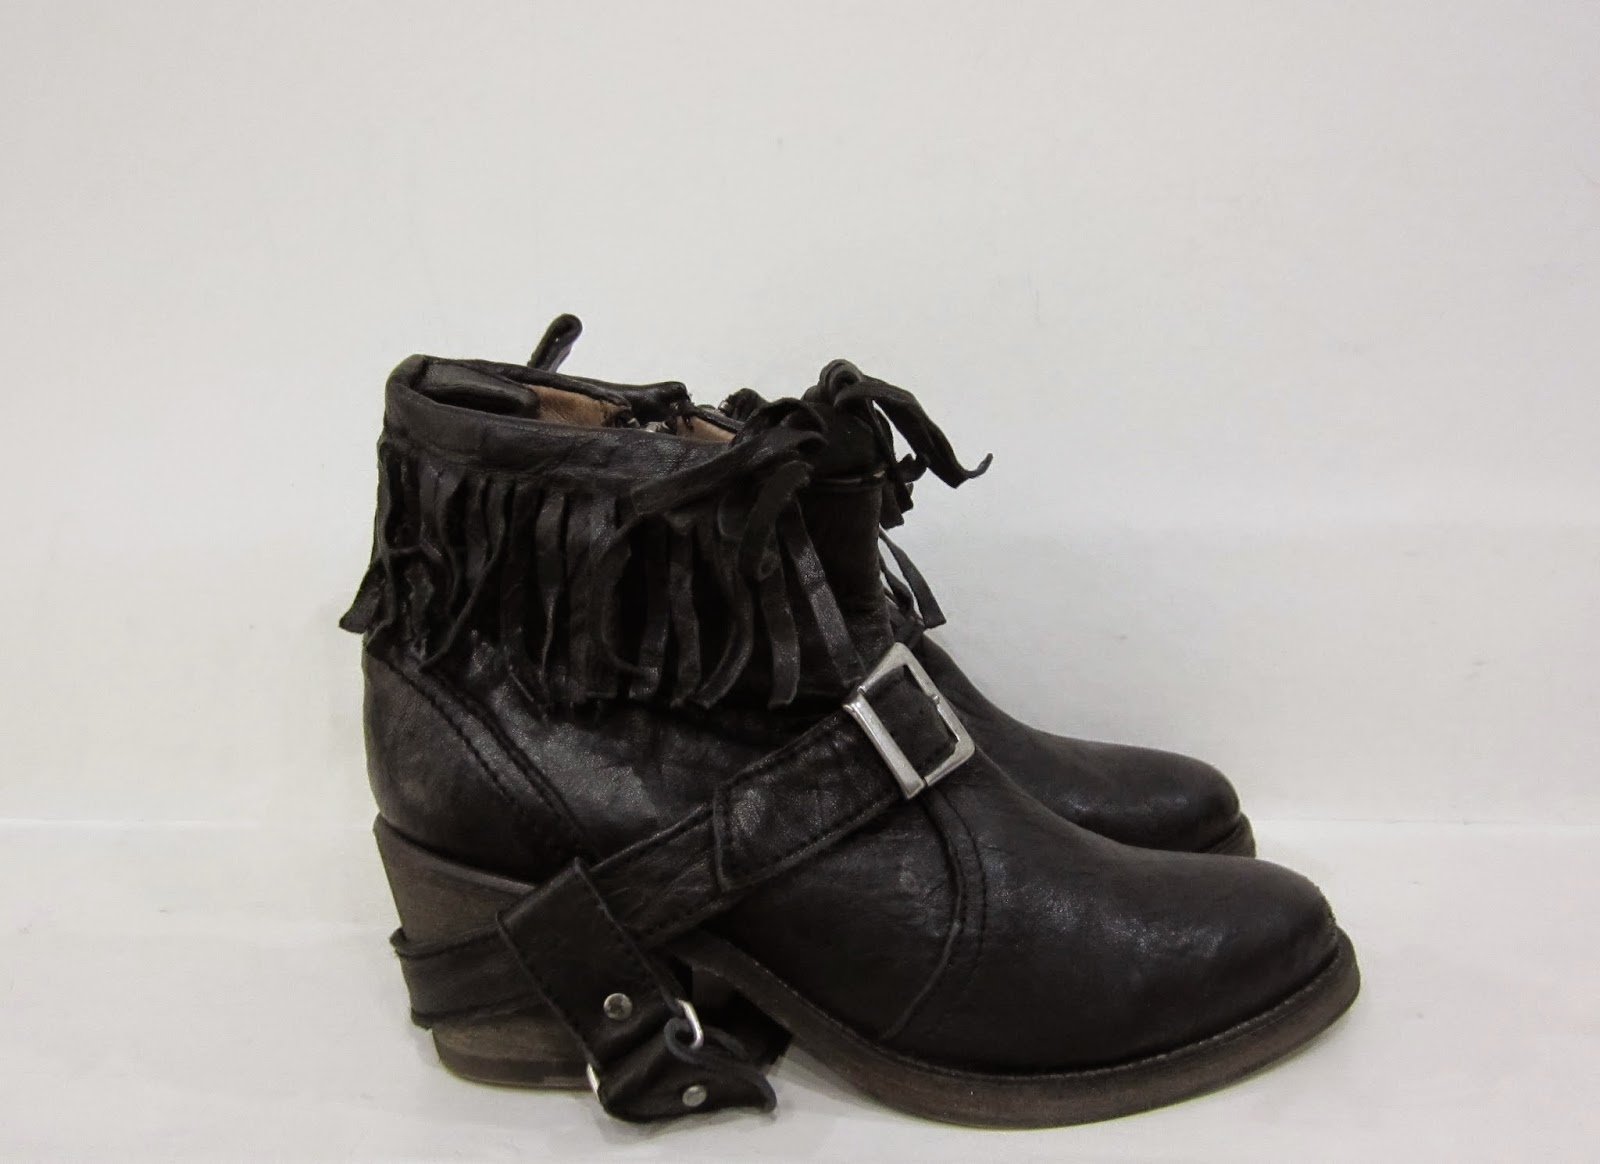 All Saints Black Leather Ankle Boots with Fringing